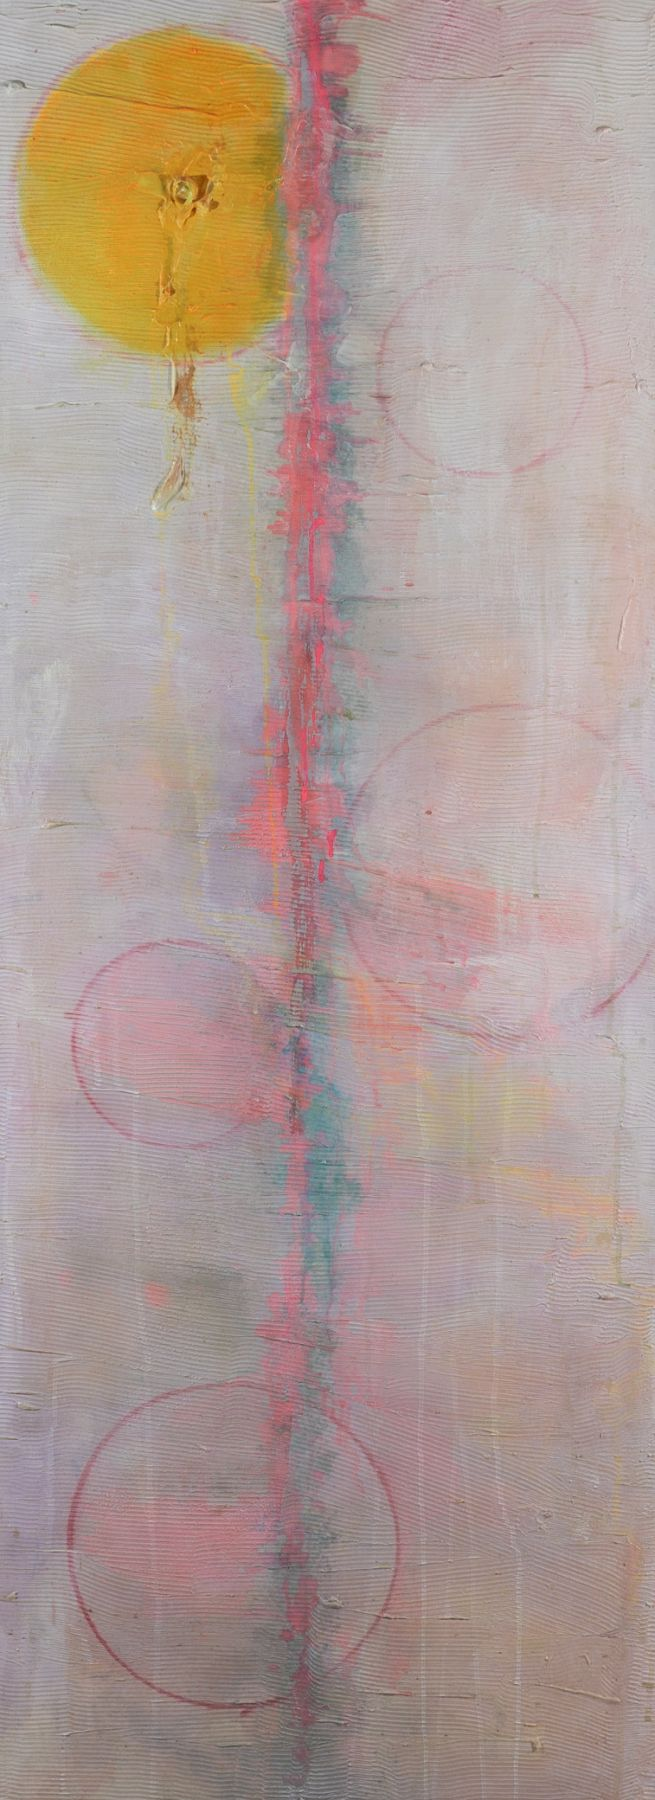 Frank Bowling, Fair Maid, 2009, Acrylic on canvas  68 x 25 inches, Abstract vertical painting with outlined spheres. Frank Bowling is interested in abstract paintings that use a color palette from his home country of Guyana.